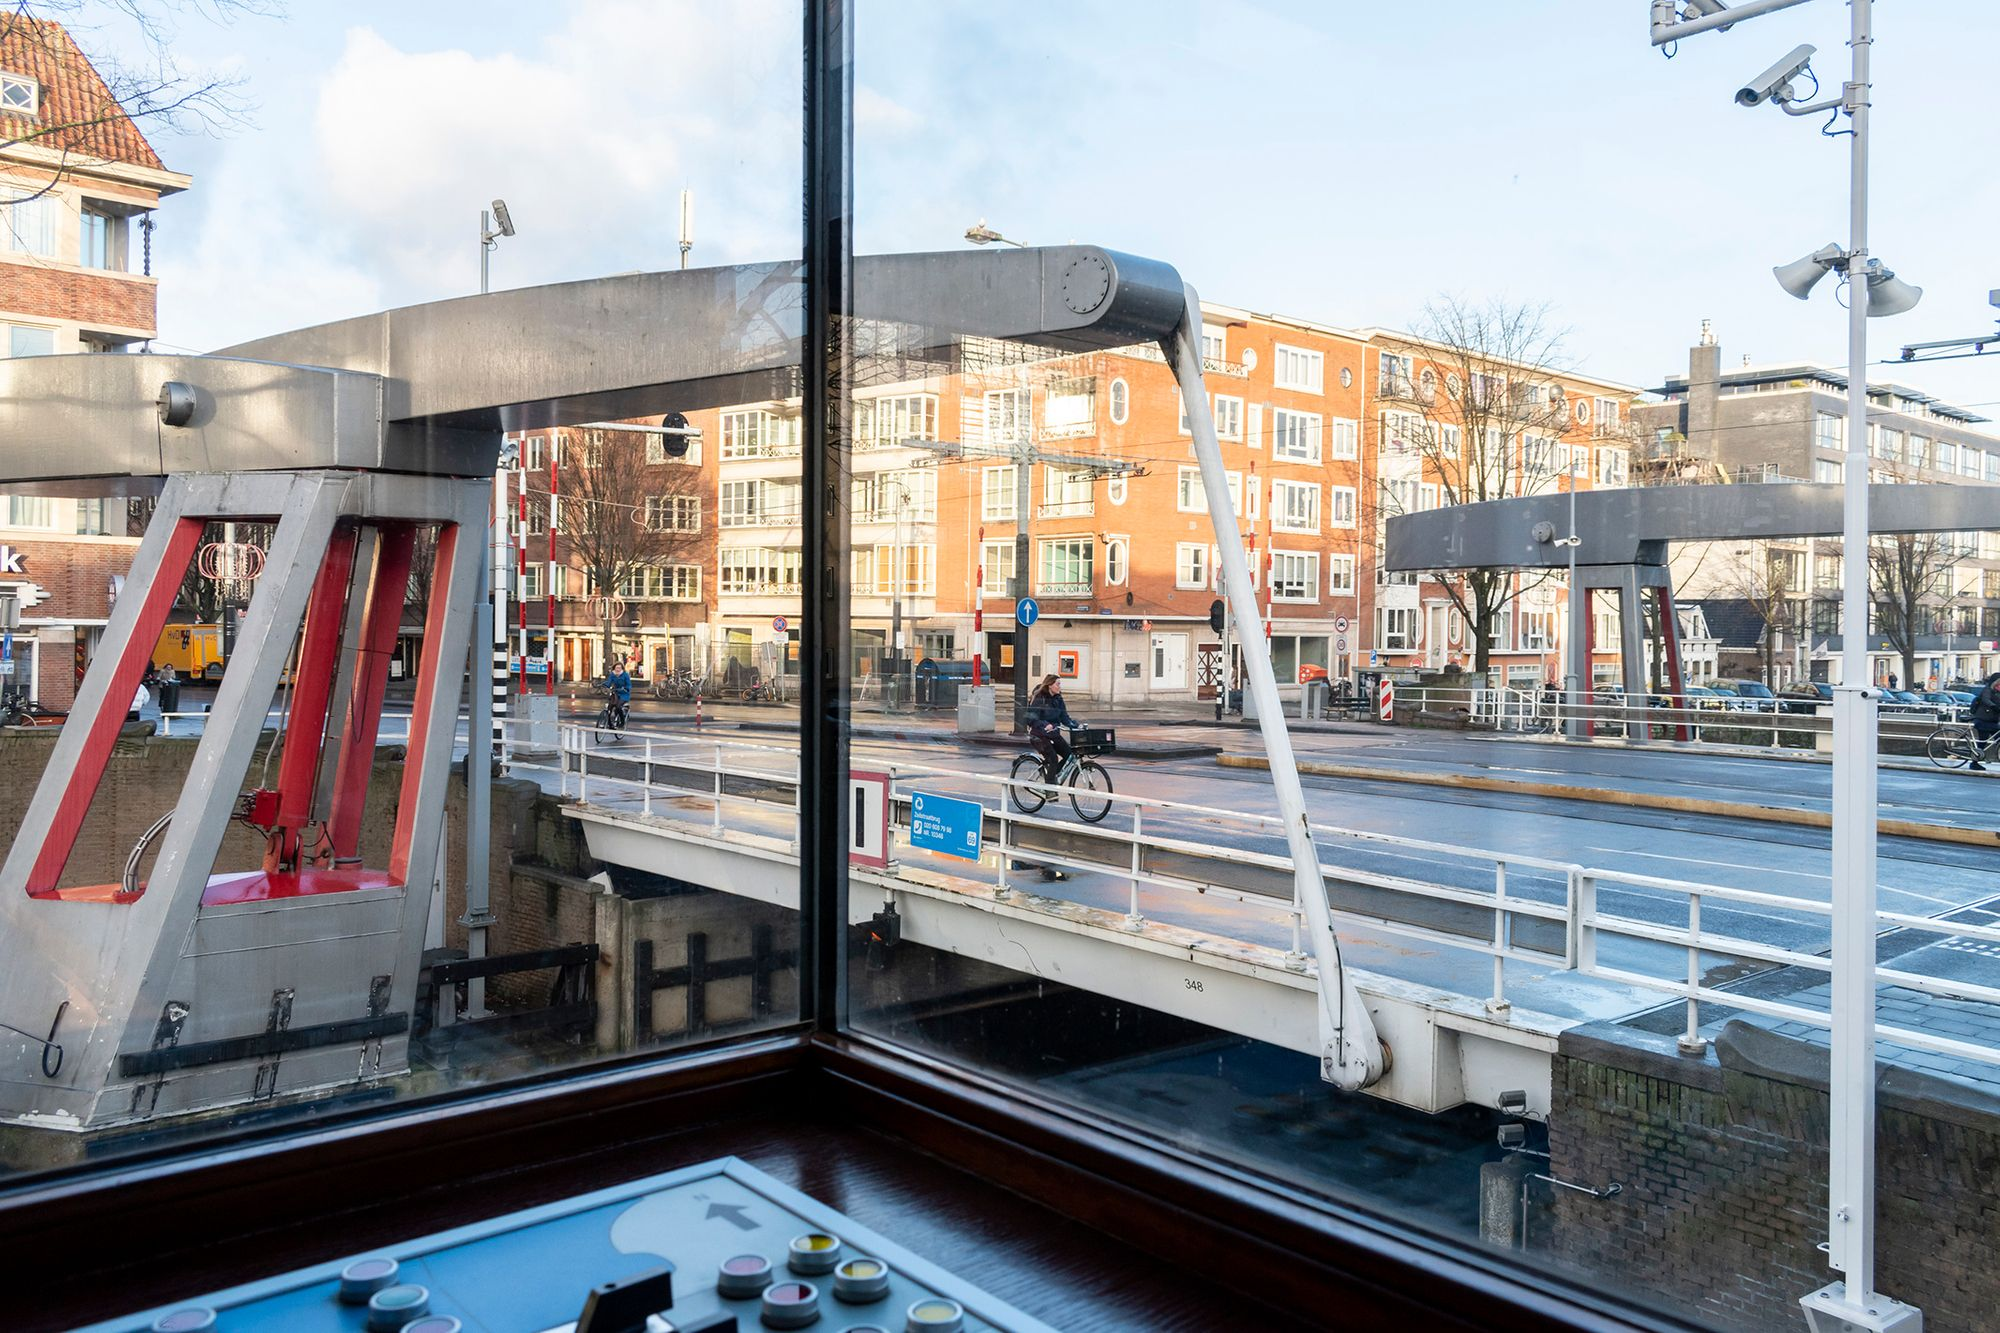 Bridgekeeper for a day at SWEETS hotel's bridge house 311 - Zeilstraatbrug.    ________ #sweetshotel #amsterdam #hotel #hotels #unique #unusual #zeilbrug #zeilstraat #zeilstraatbrug #amsterdamwest #brugwachter #bridgekeeper #bridgekeepershouse #brugwachtershuisje #cyclist #bridge #bridgehouse #bridgehousehotel #roomwithaview #dispersed #hotels #deconstructed #hotels #experiencehotels #wanderlust #travel